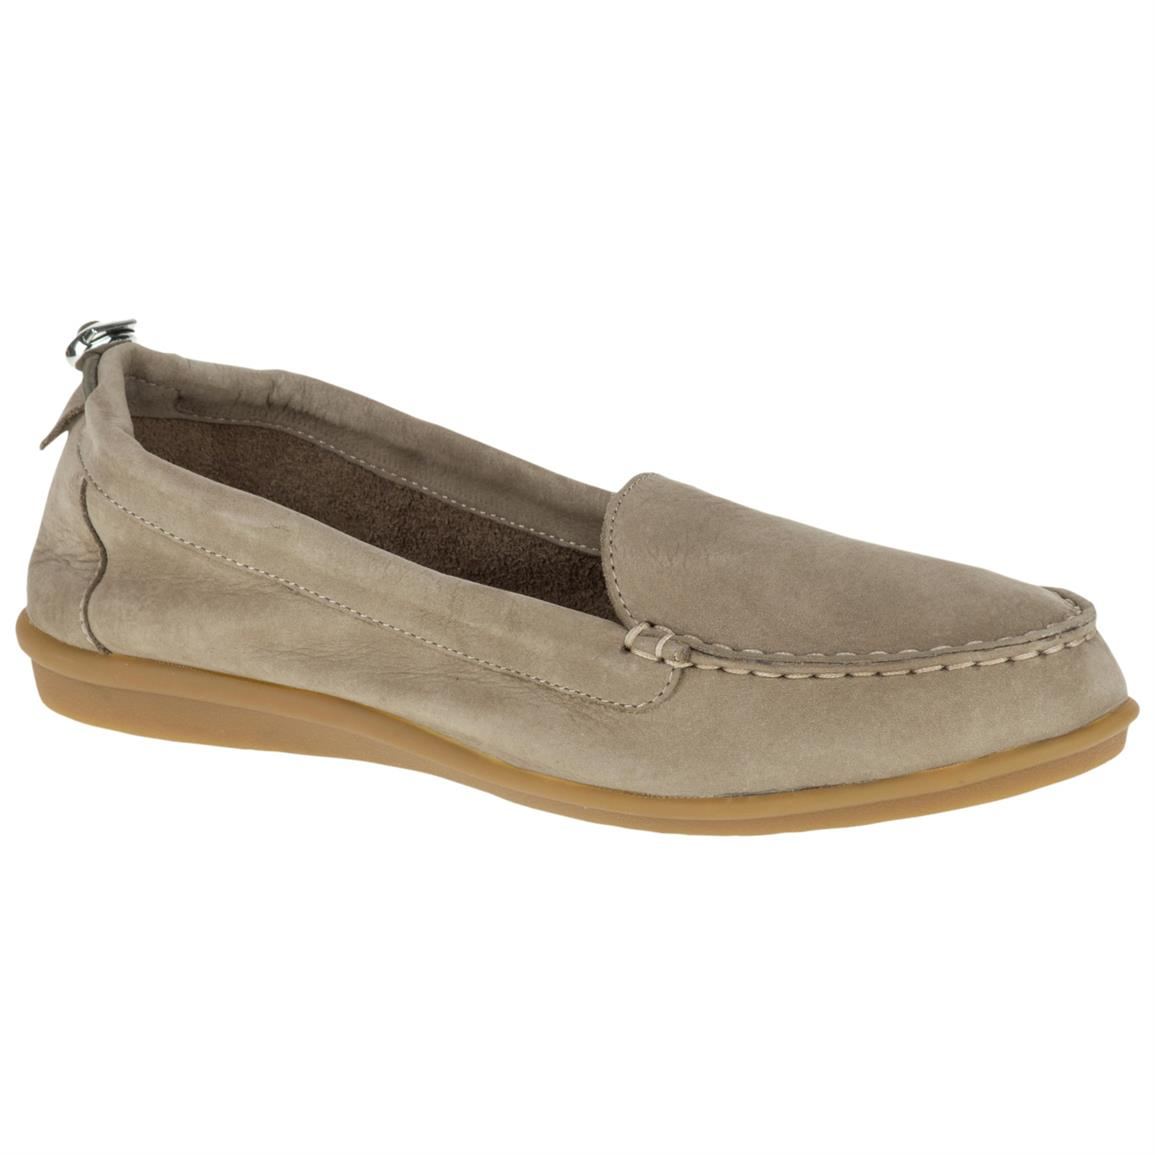 Hush Puppies Women's Endless Wink Casual Shoes, Taupe Nubu